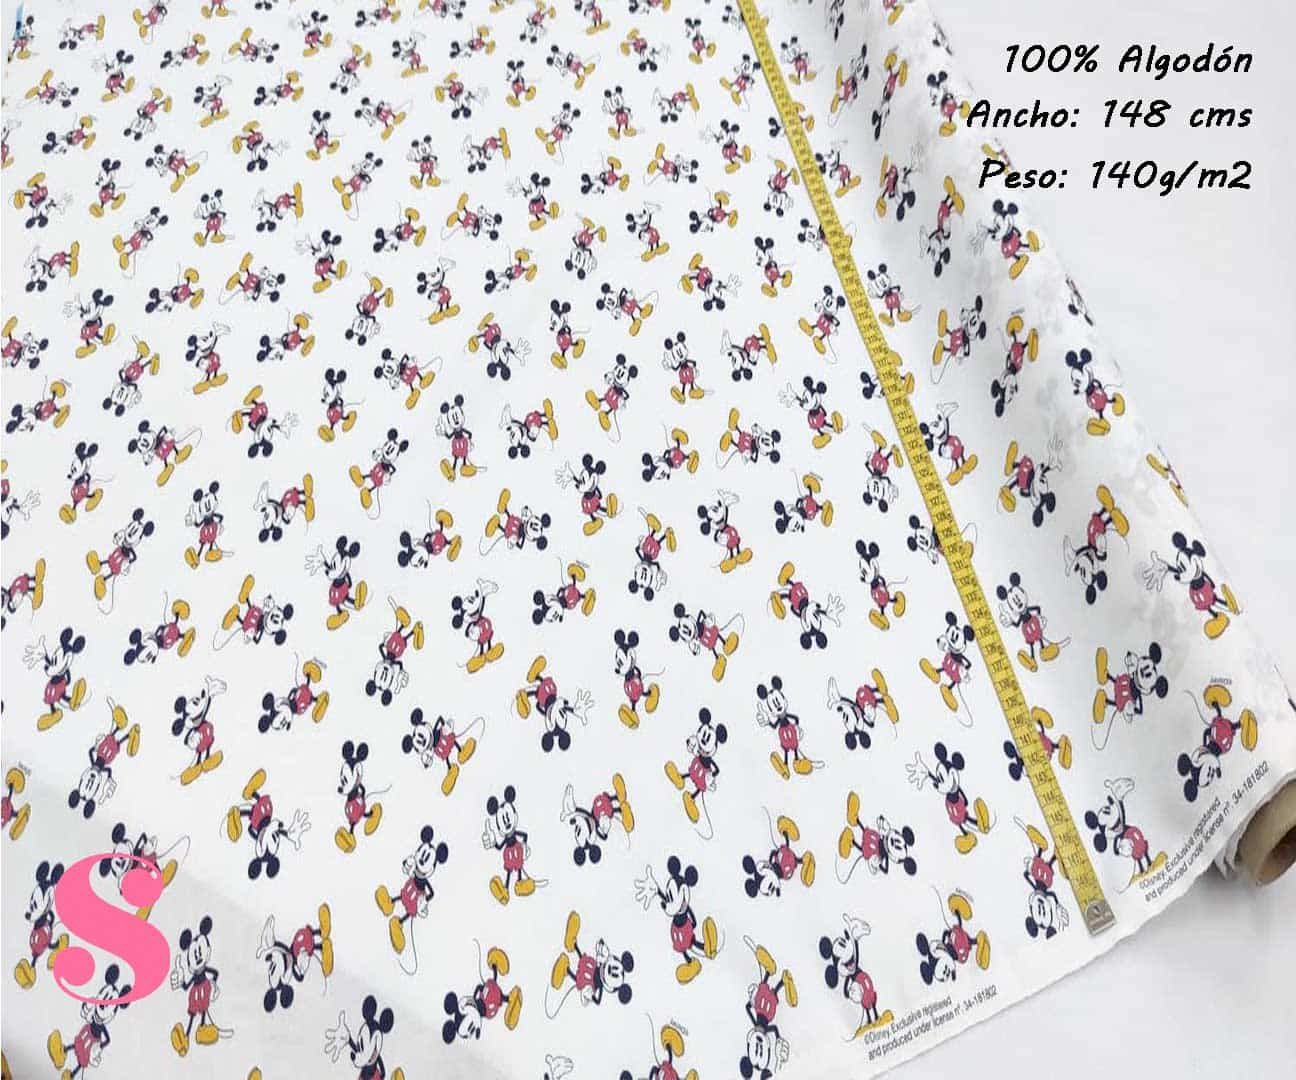 152-mickey-mouse-disney-tejidos-estampado-popelin,Tejido Estampado Disney Mickey Mouse